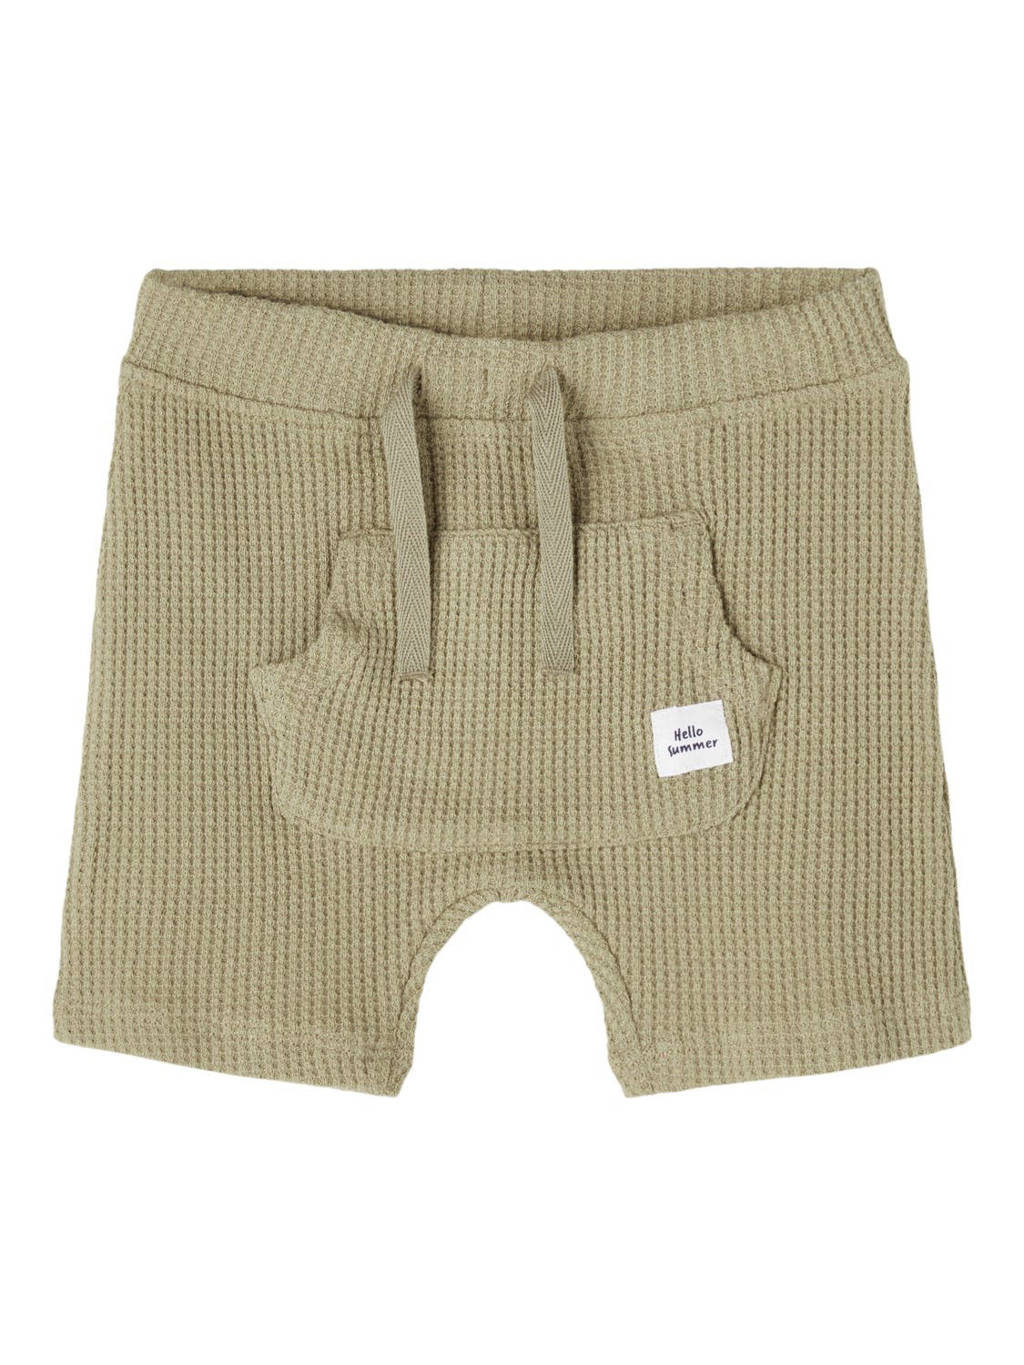 NAME IT BABY baby regular fit short Hardy met biologisch katoen kaki, Kaki